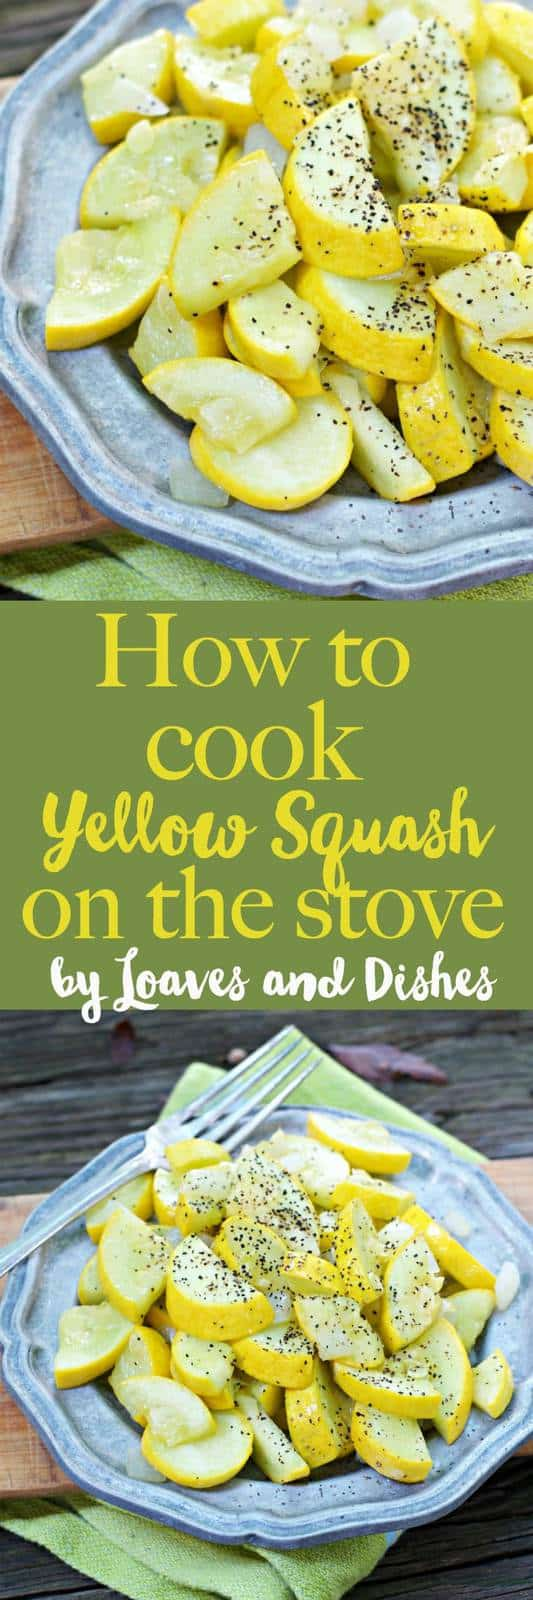 HOW TO COOK YELLOW SQUASH ON THE STOVE - Loaves and Dishes